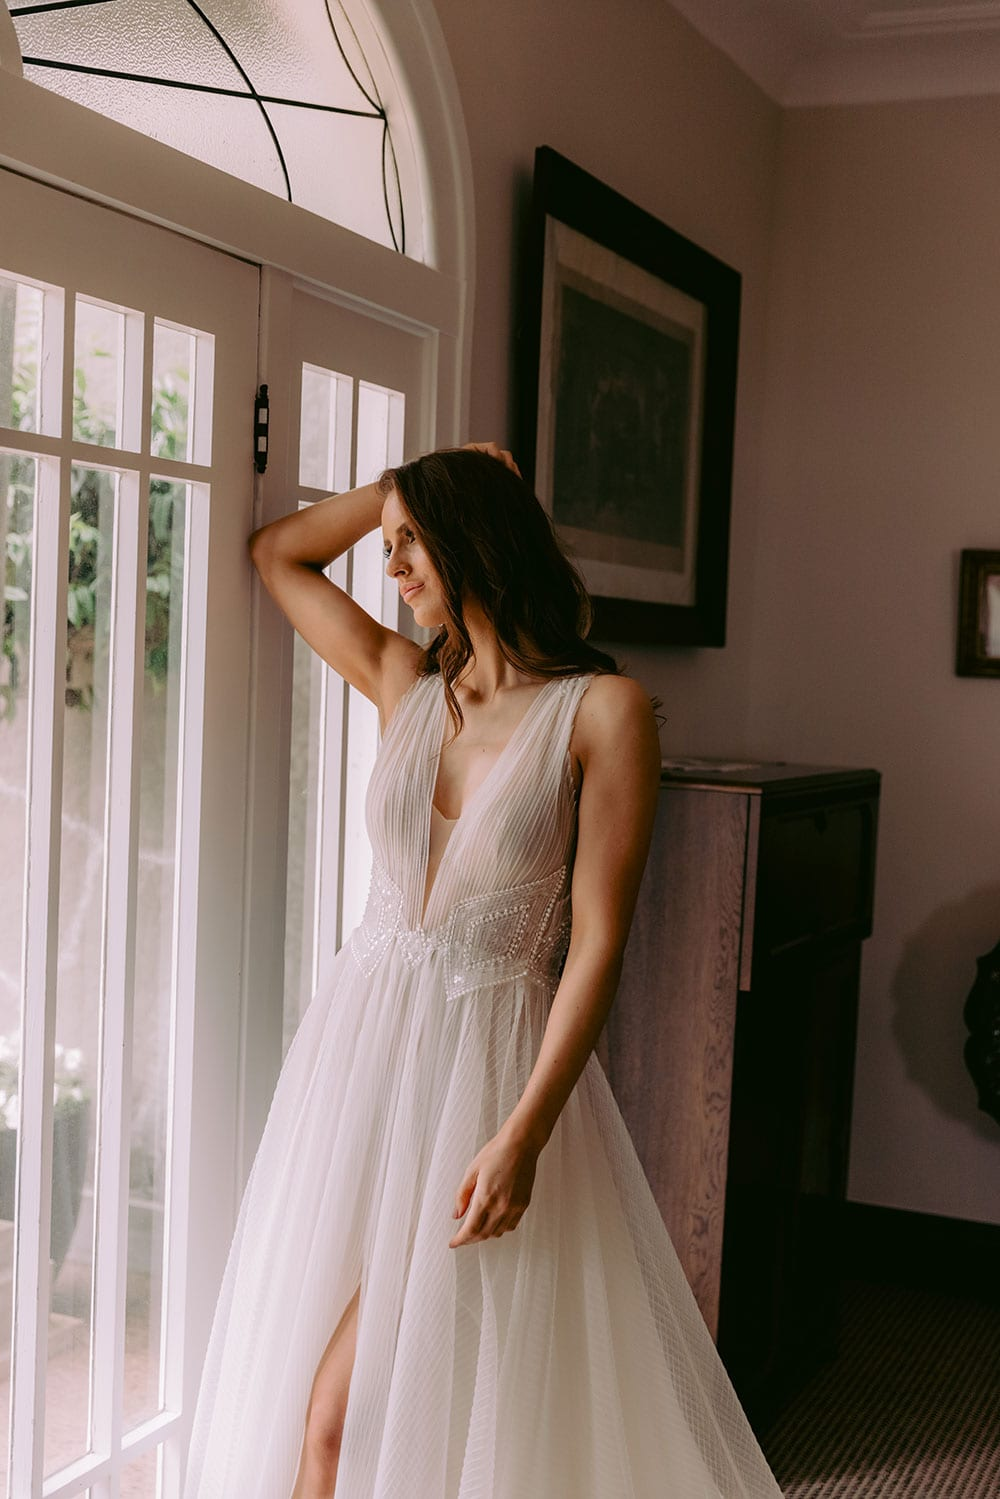 Daytona Wedding gown from Vinka Design - This gown is a true show stopper! Soft pleated tulle wedding dress that cascades into a dramatic train. Tulle or Satin under-skirt accentuates the waist with the perfect combination of hand-beaded sequins and pearls. Model wearing gown inside beautiful old room next to window.